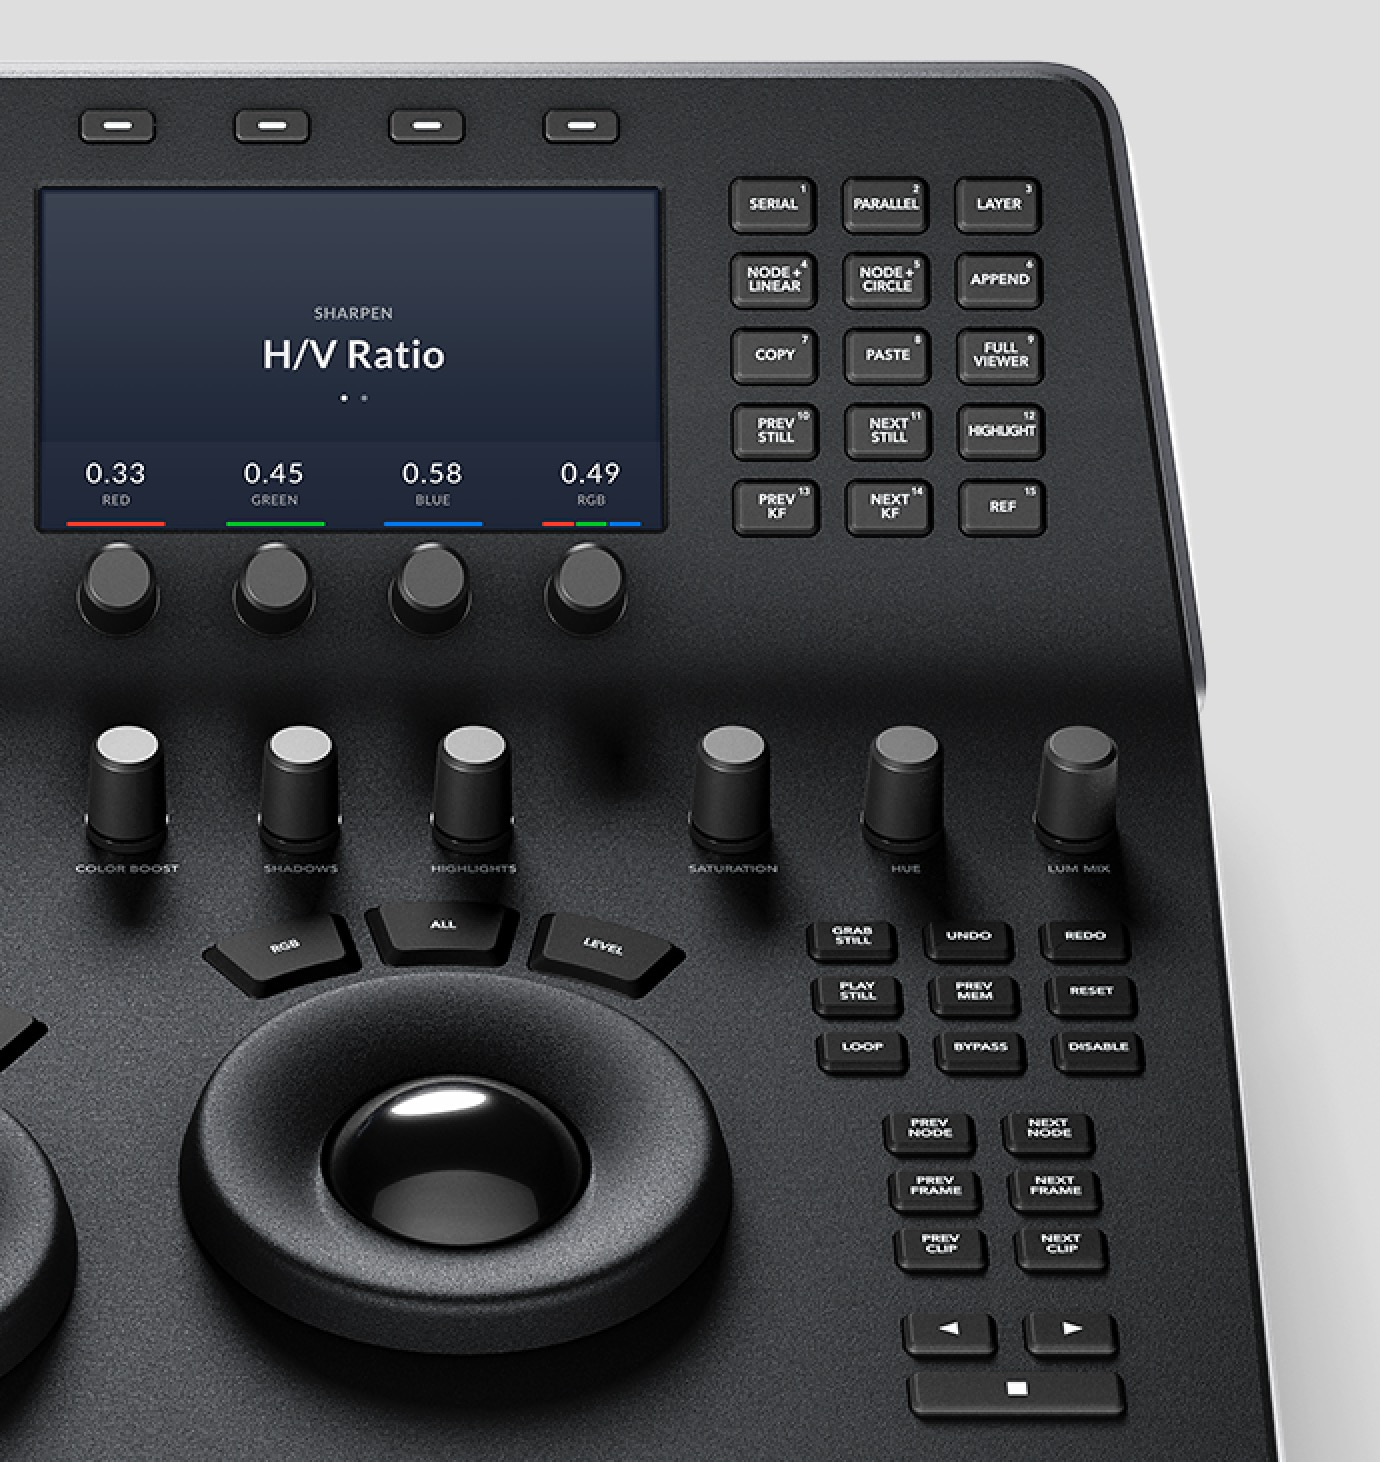 Blackmagic Design introduces two new color grading panels for DaVinci Resolve 3